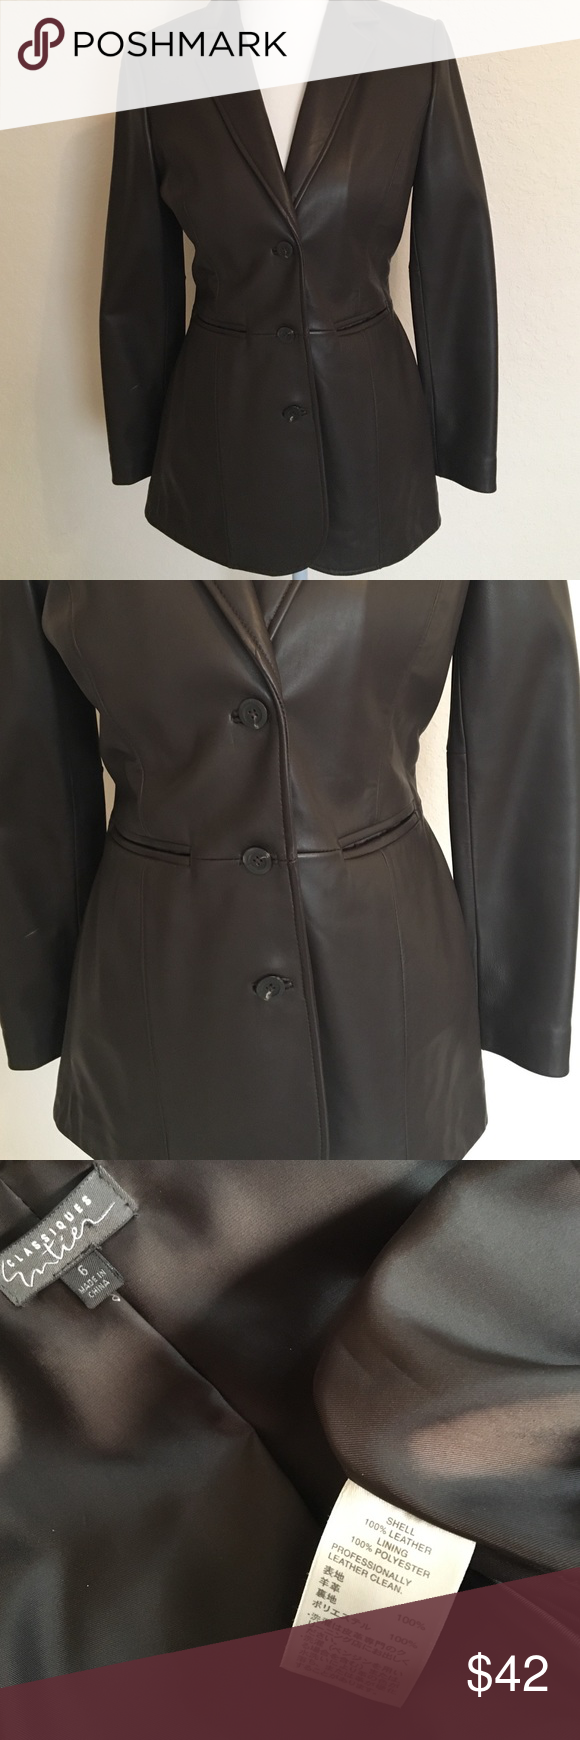 Classiques by Nordstrom 100 Leather Jacket/Size 6 Dark